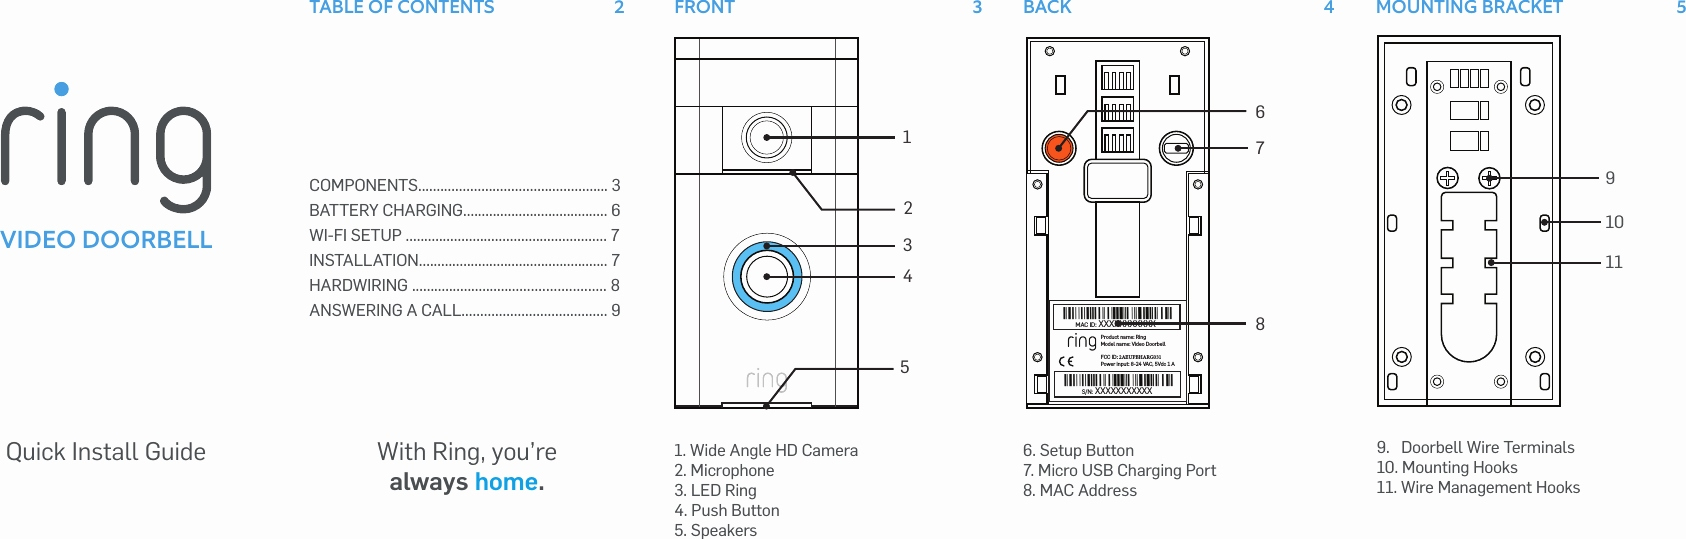 ring doorbell wiring diagram Download-Wiring Diagram Nutone Doorbell Wiring Diagram Inspirational Wiring 68 Awesome How to Install Doorbell Wires 7-q